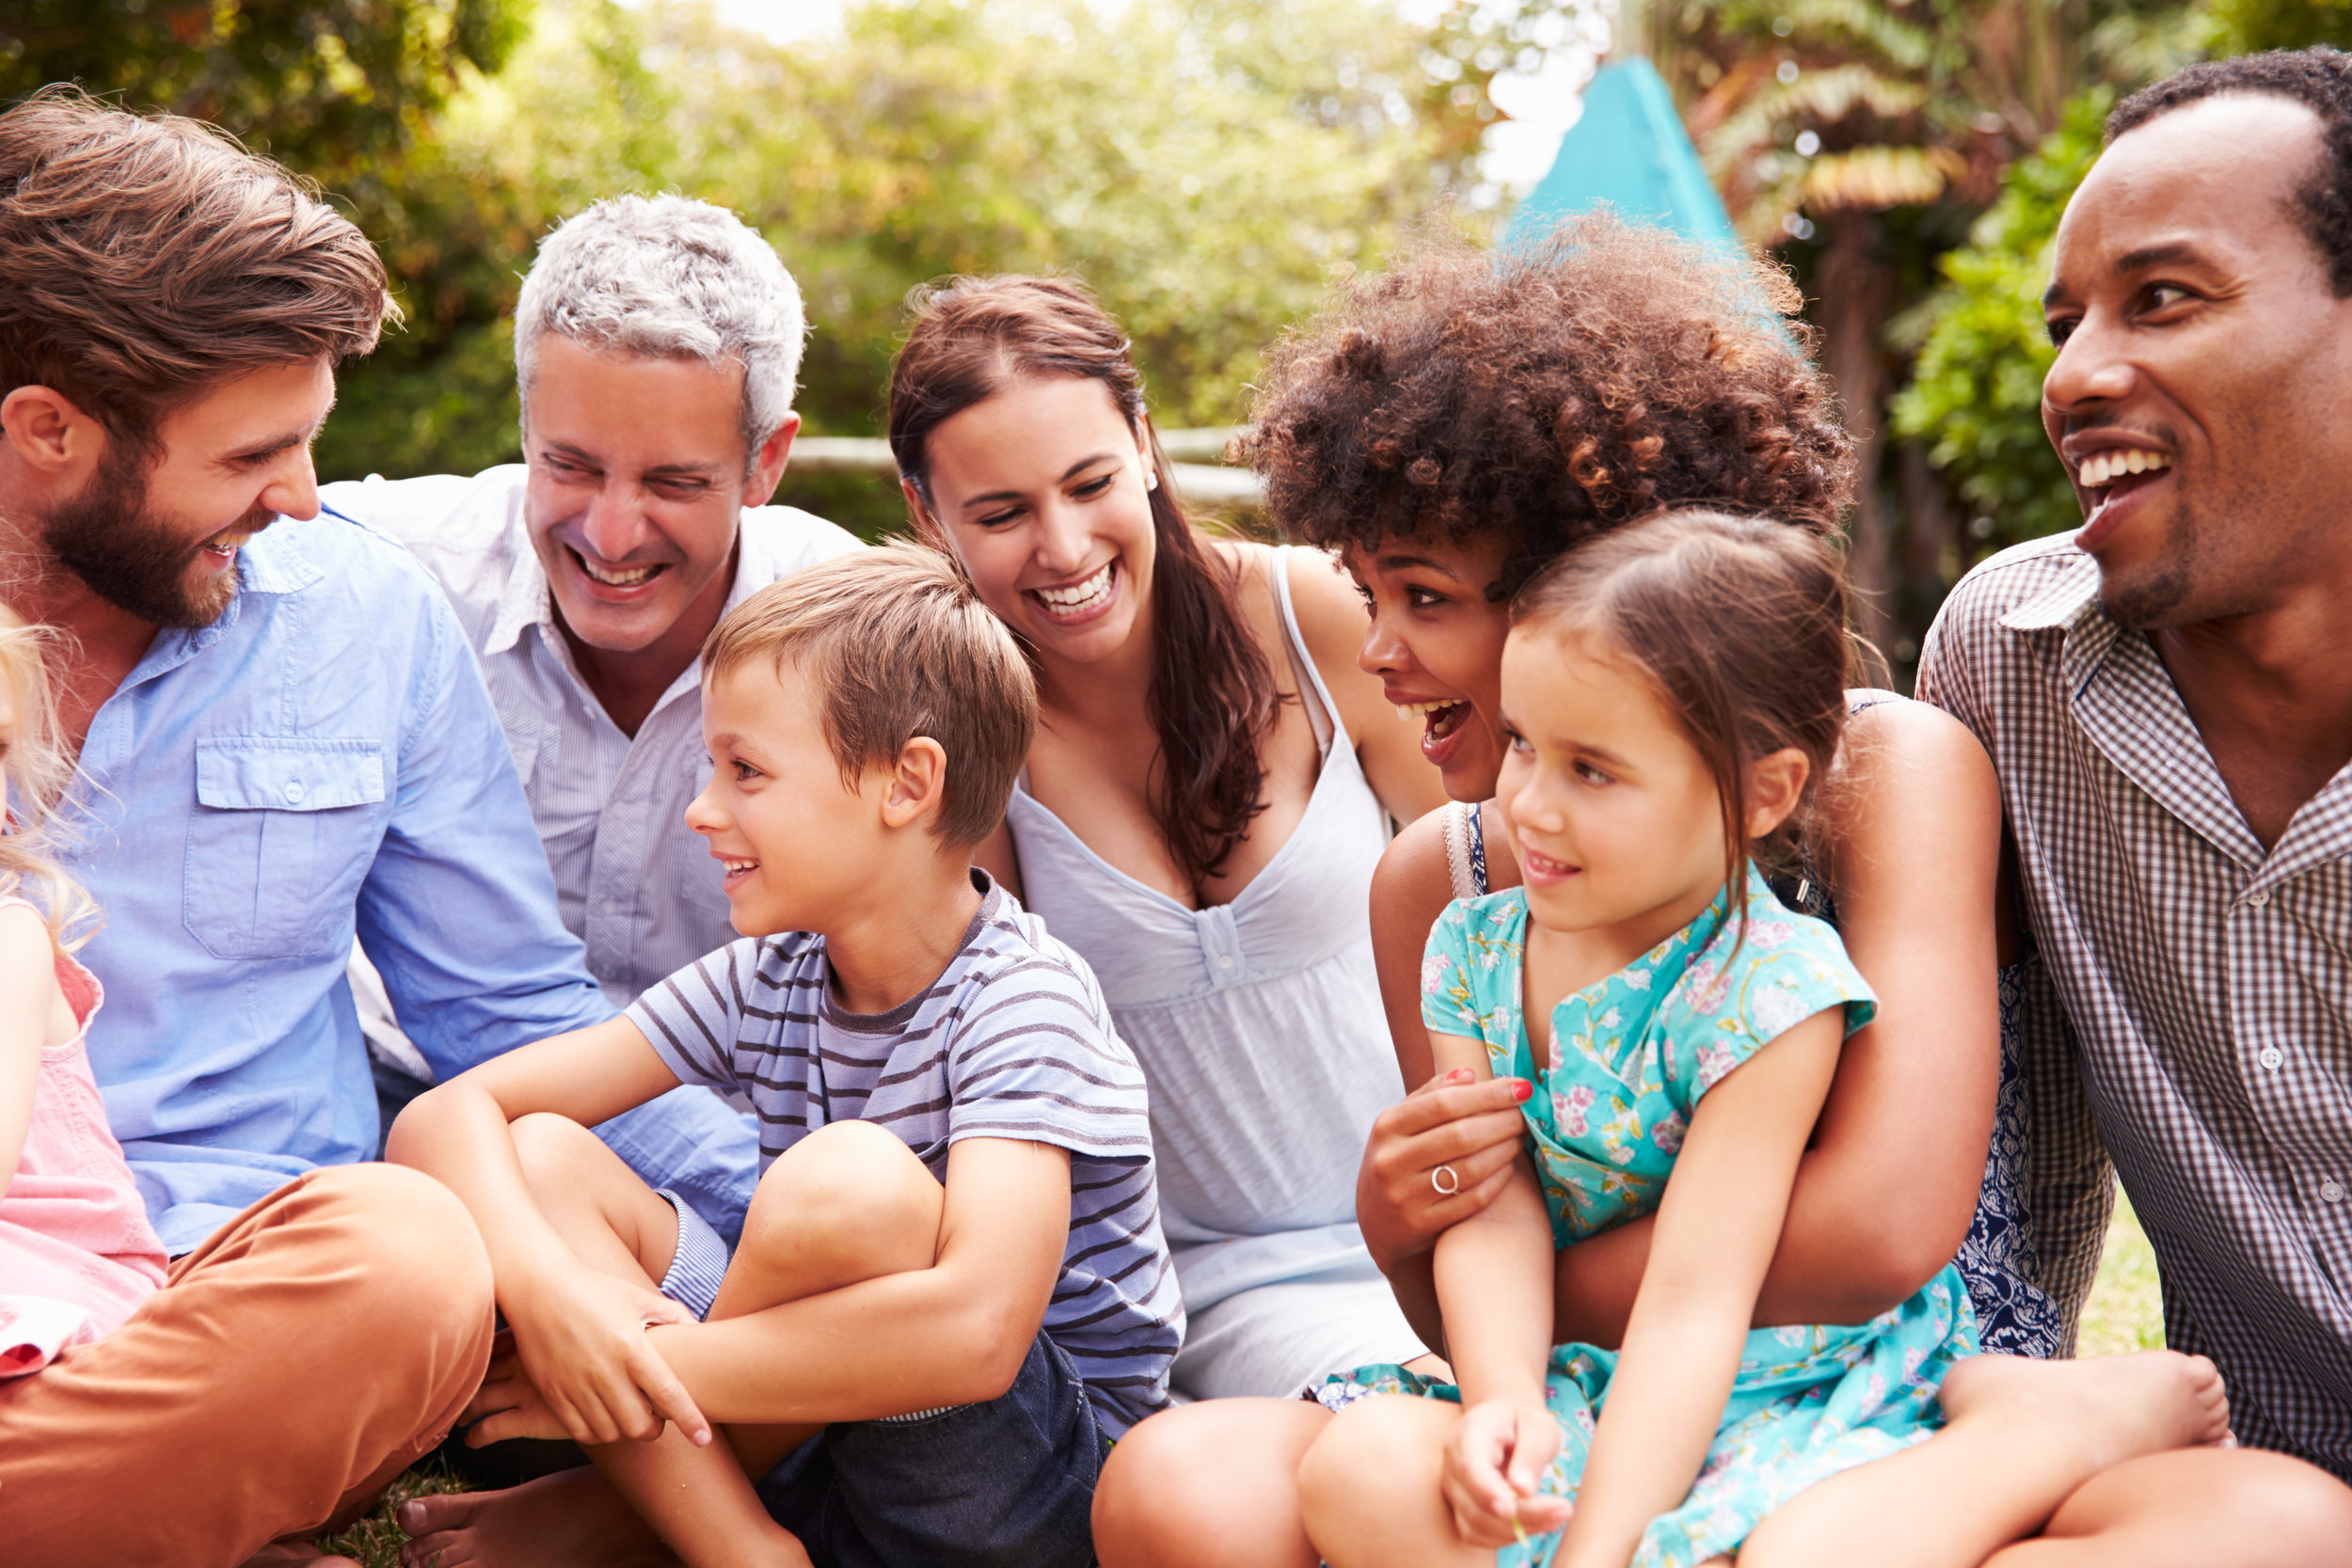 Join a Group - Build social connections and parenting skills in Circle of Parent groups all around Colorado.